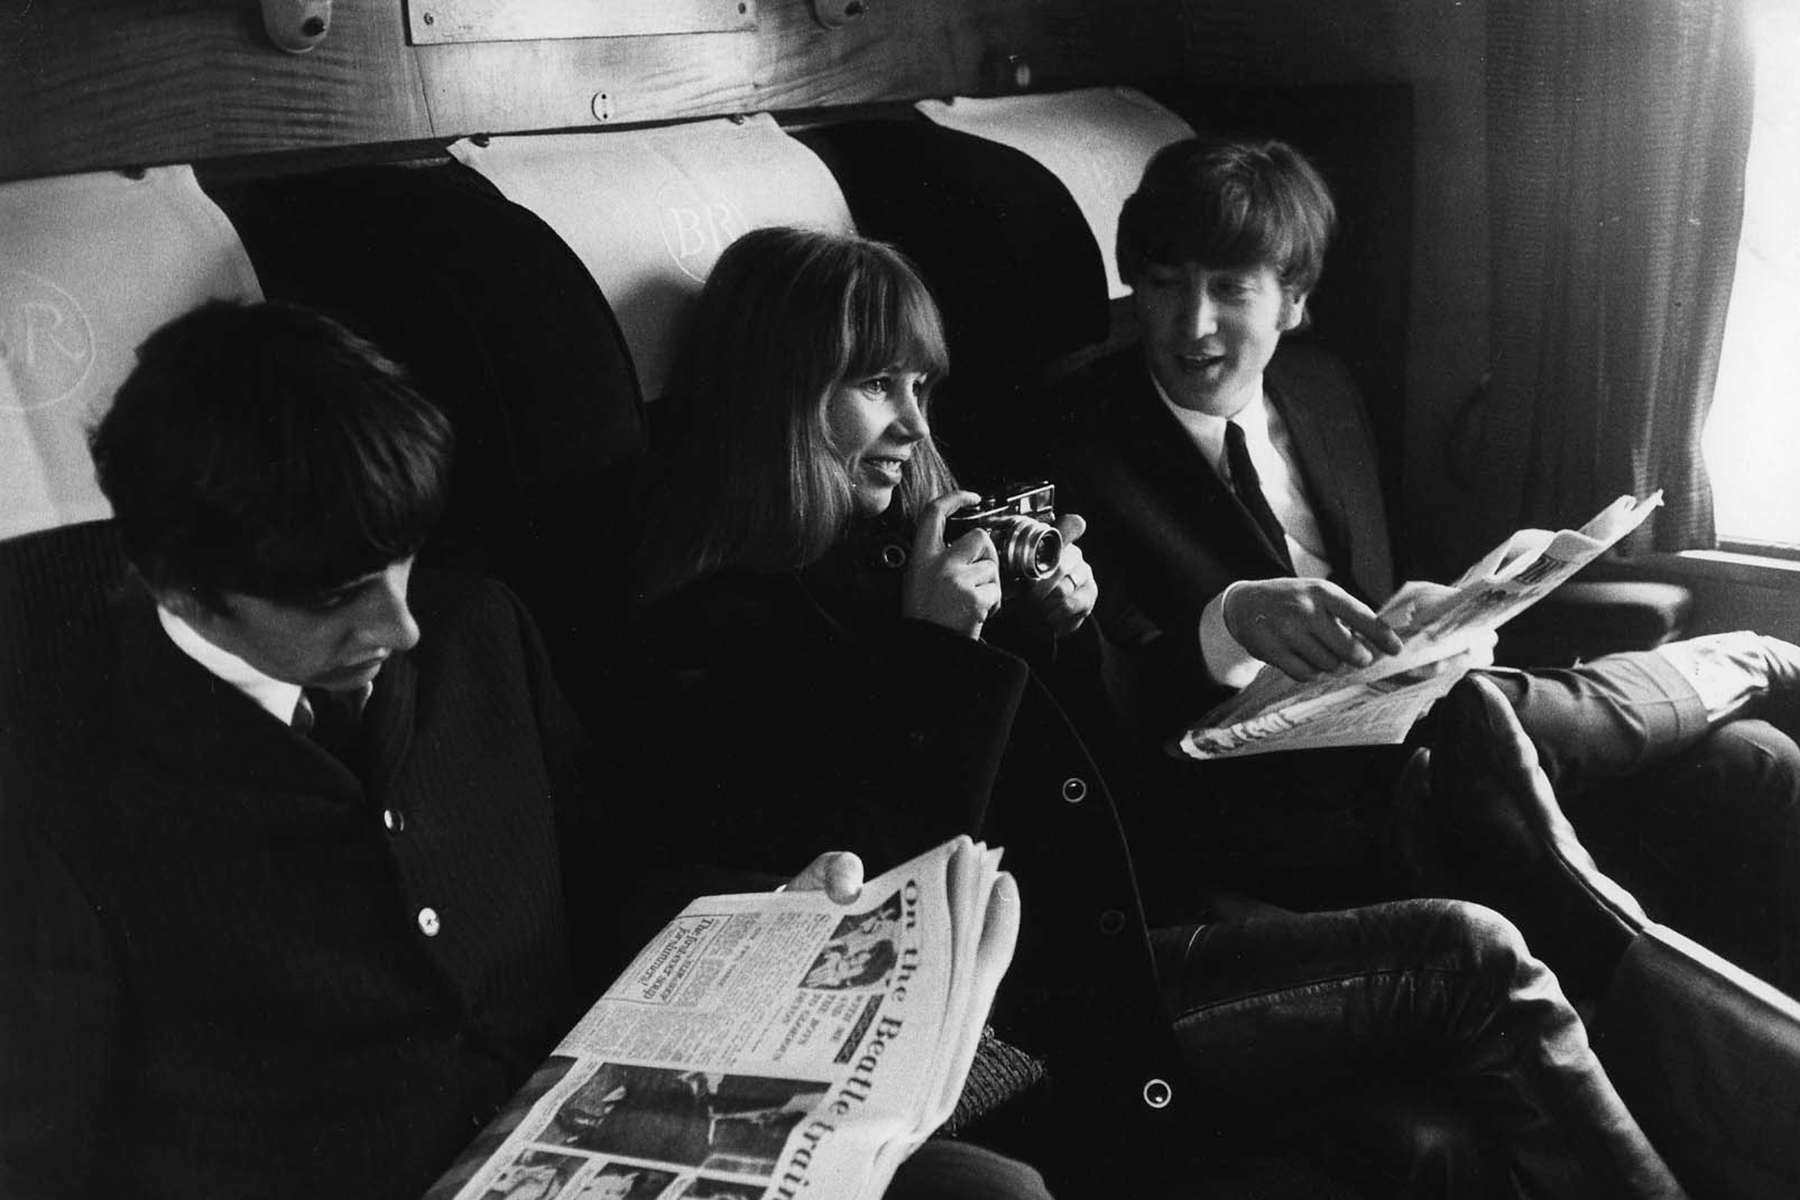 """UNSPECIFIED - CIRCA 1960:  Photo of John LENNON and Astrid KIRCHHERR and BEATLES; L-R: Ringo Starr, Astrid Kirchherr (holding camera) & John Lennon - sitting on train during the filming of """"A Hard Day's Night""""  (Photo by Max Scheler - K & K/Redferns)"""